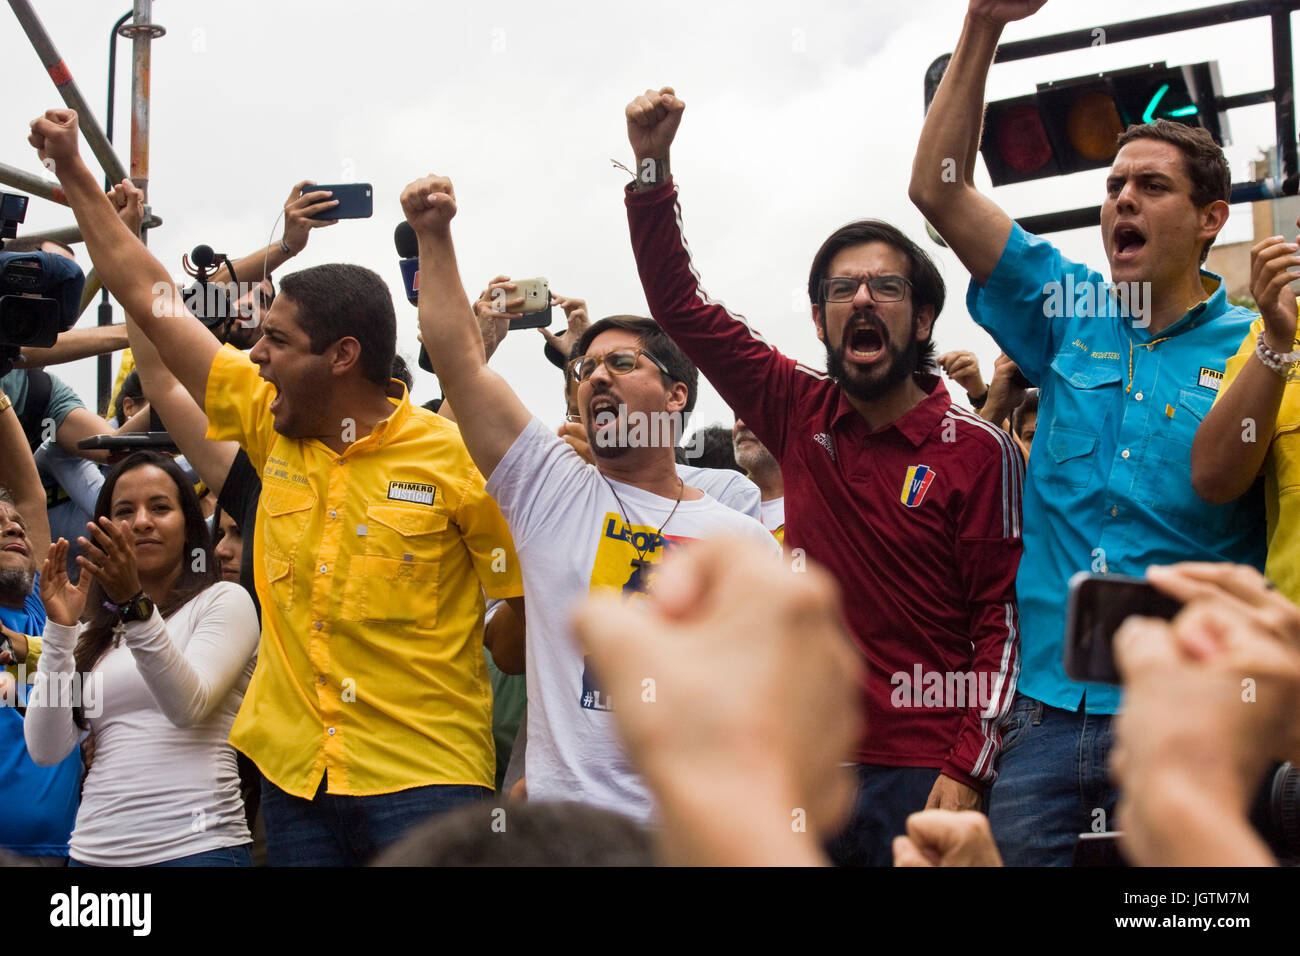 Members of the National Assembly of Venezuela together during a protest against the government of Nicolás Maduro. Stock Photo